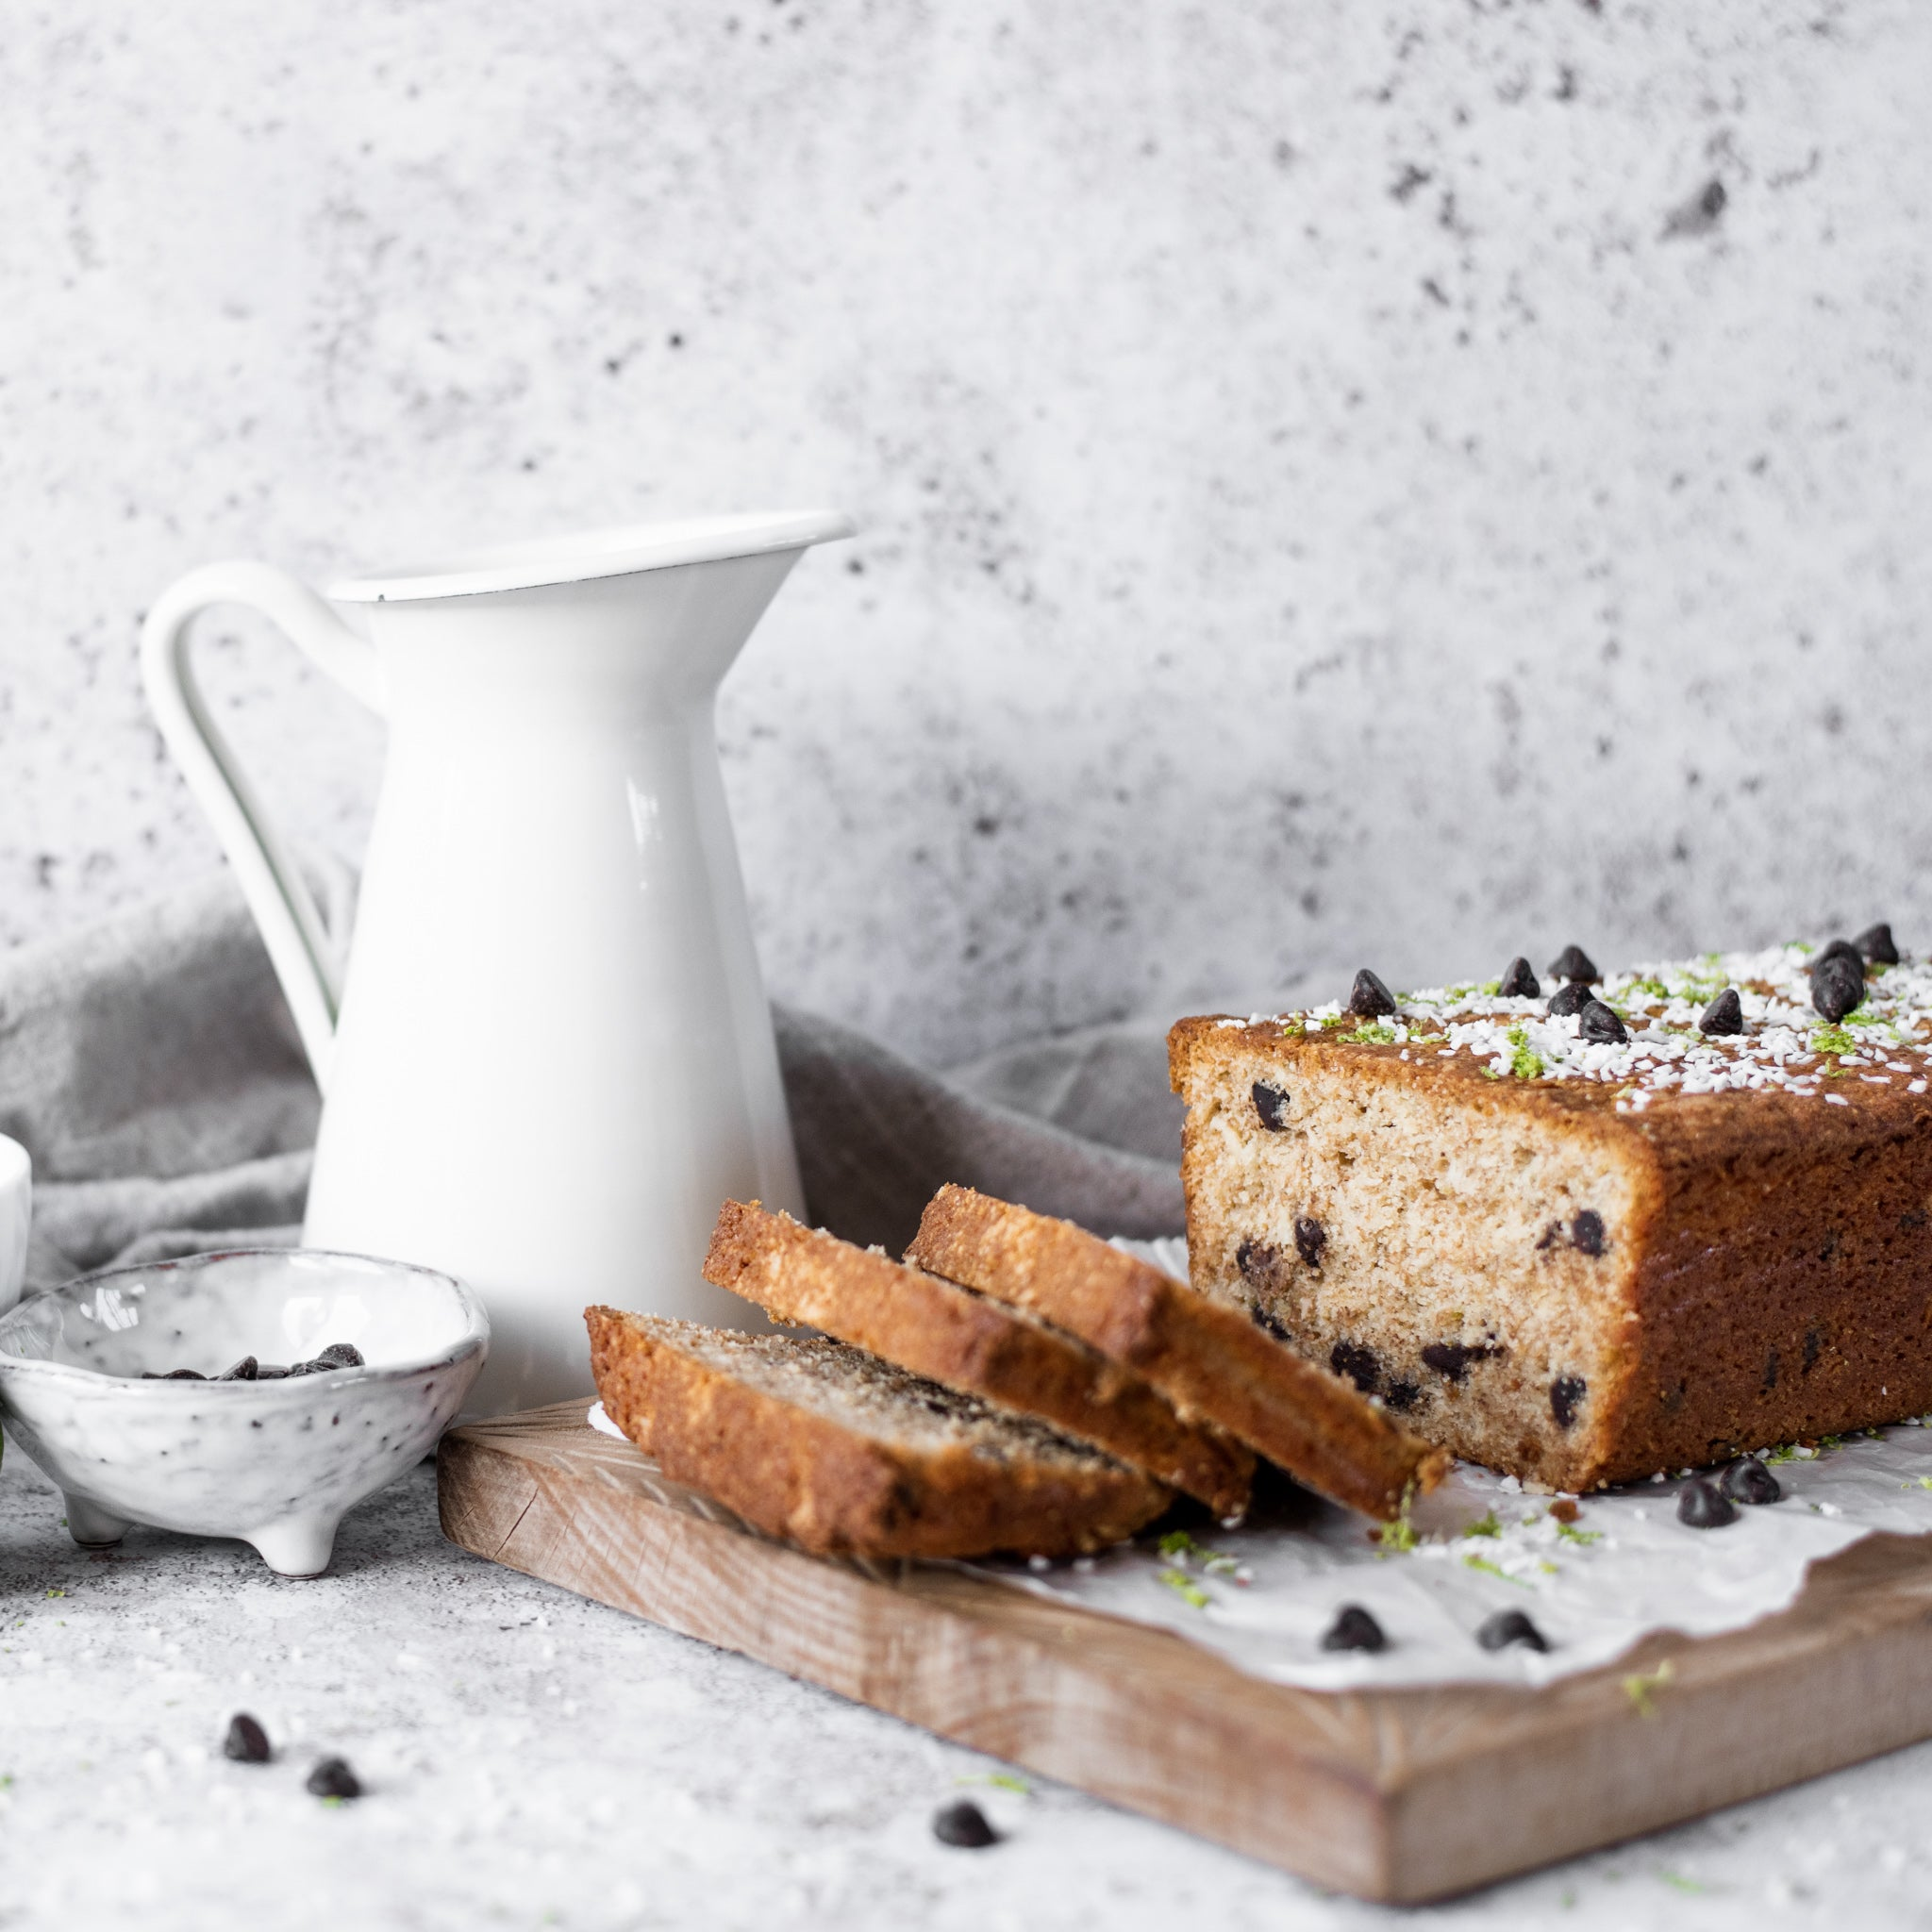 Coconut-Lime-Chocolate-Loaf-by-Allinson-s-(7).jpg